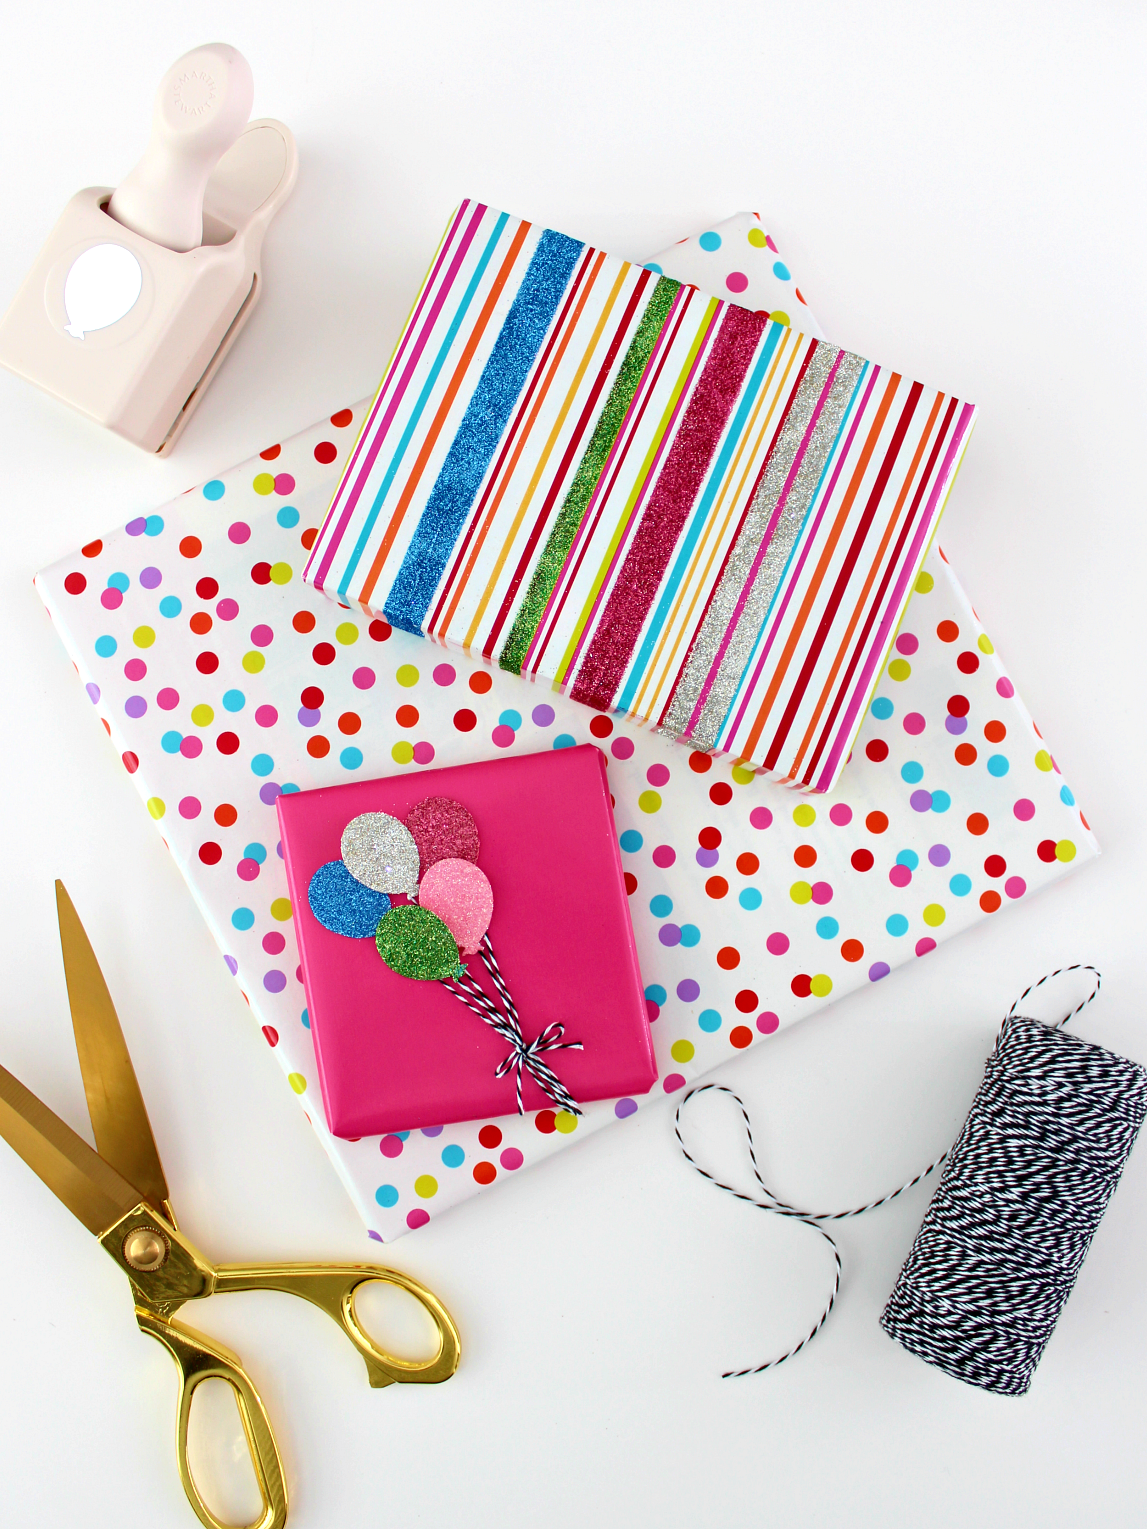 GLITTER GIFT WRAP & HOW TO MAKE YOUR OWN GLITTER SHAPES